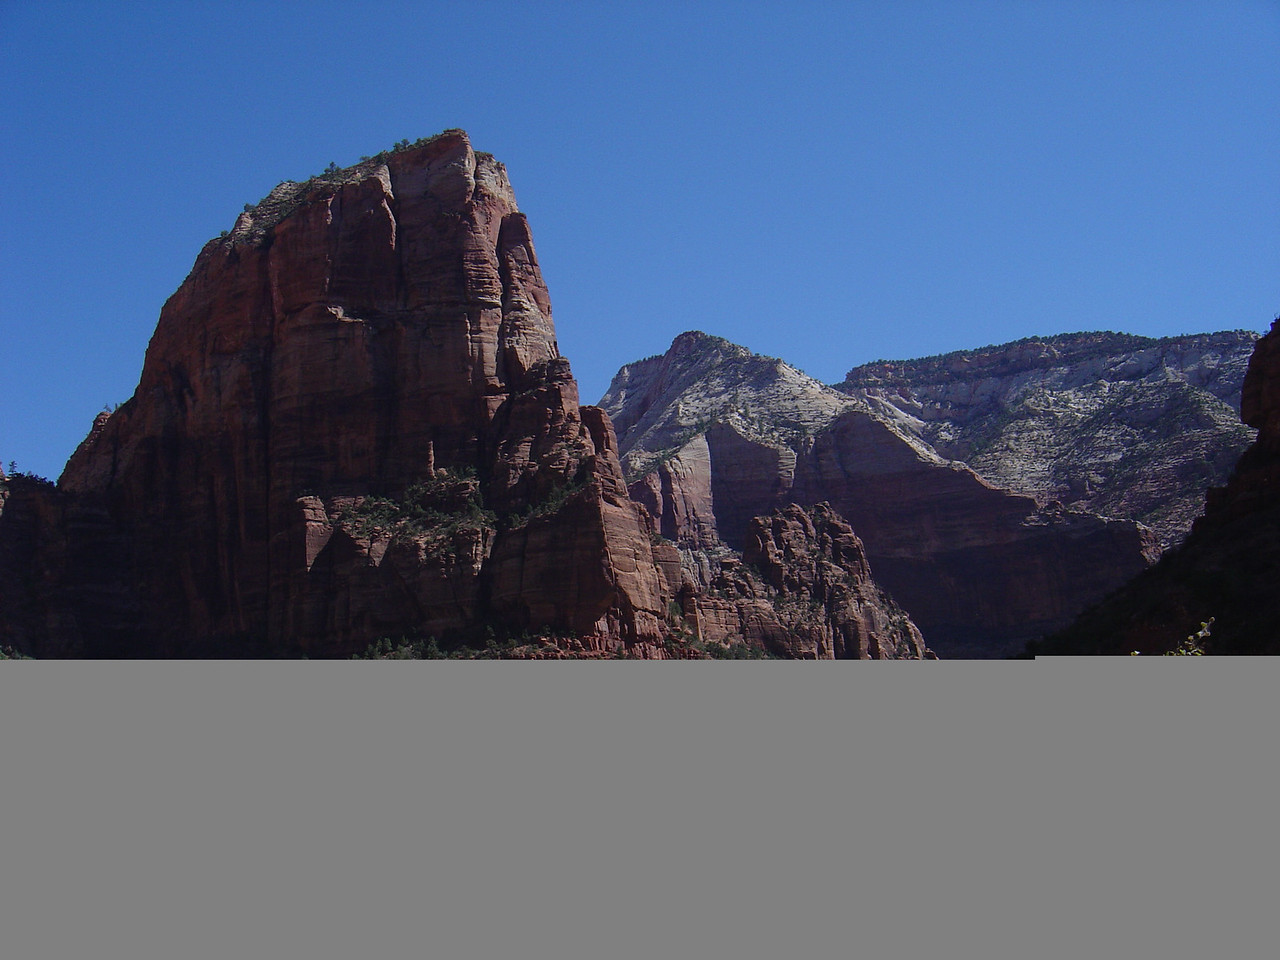 angels landing from the ground